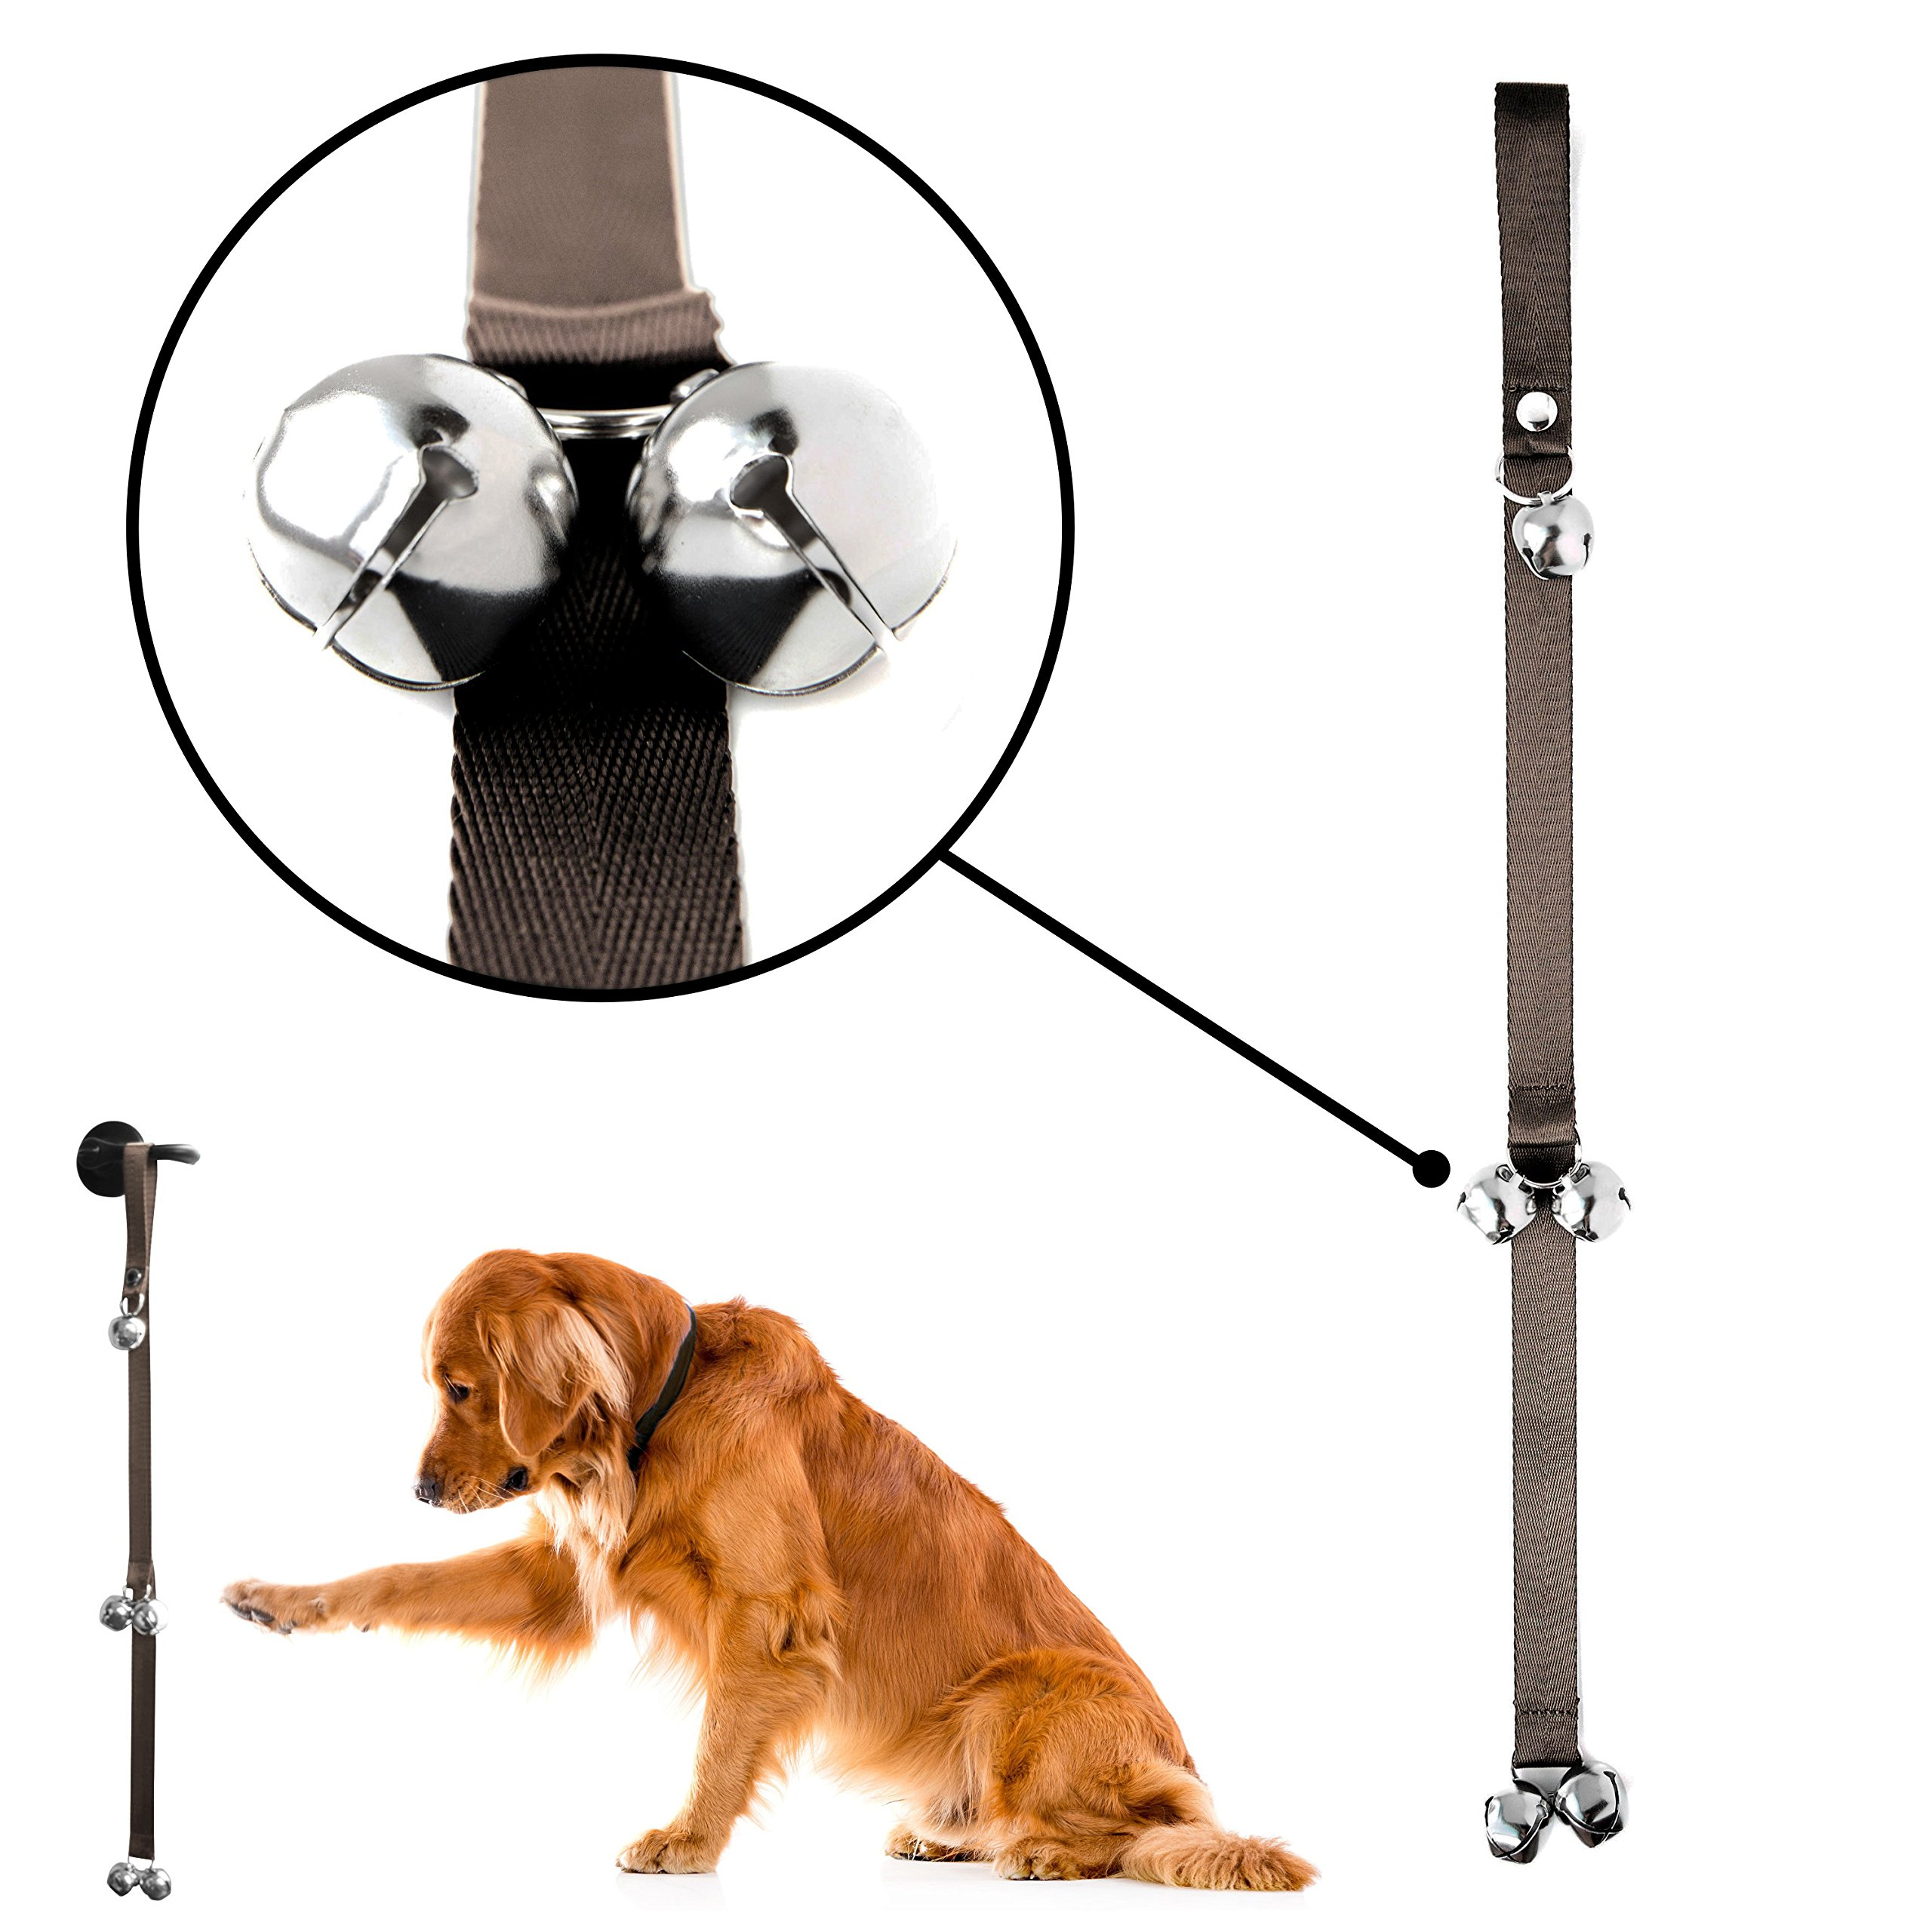 Mighty Paw Tinkle Bells Premium Quality Dog Training Bells BROWN